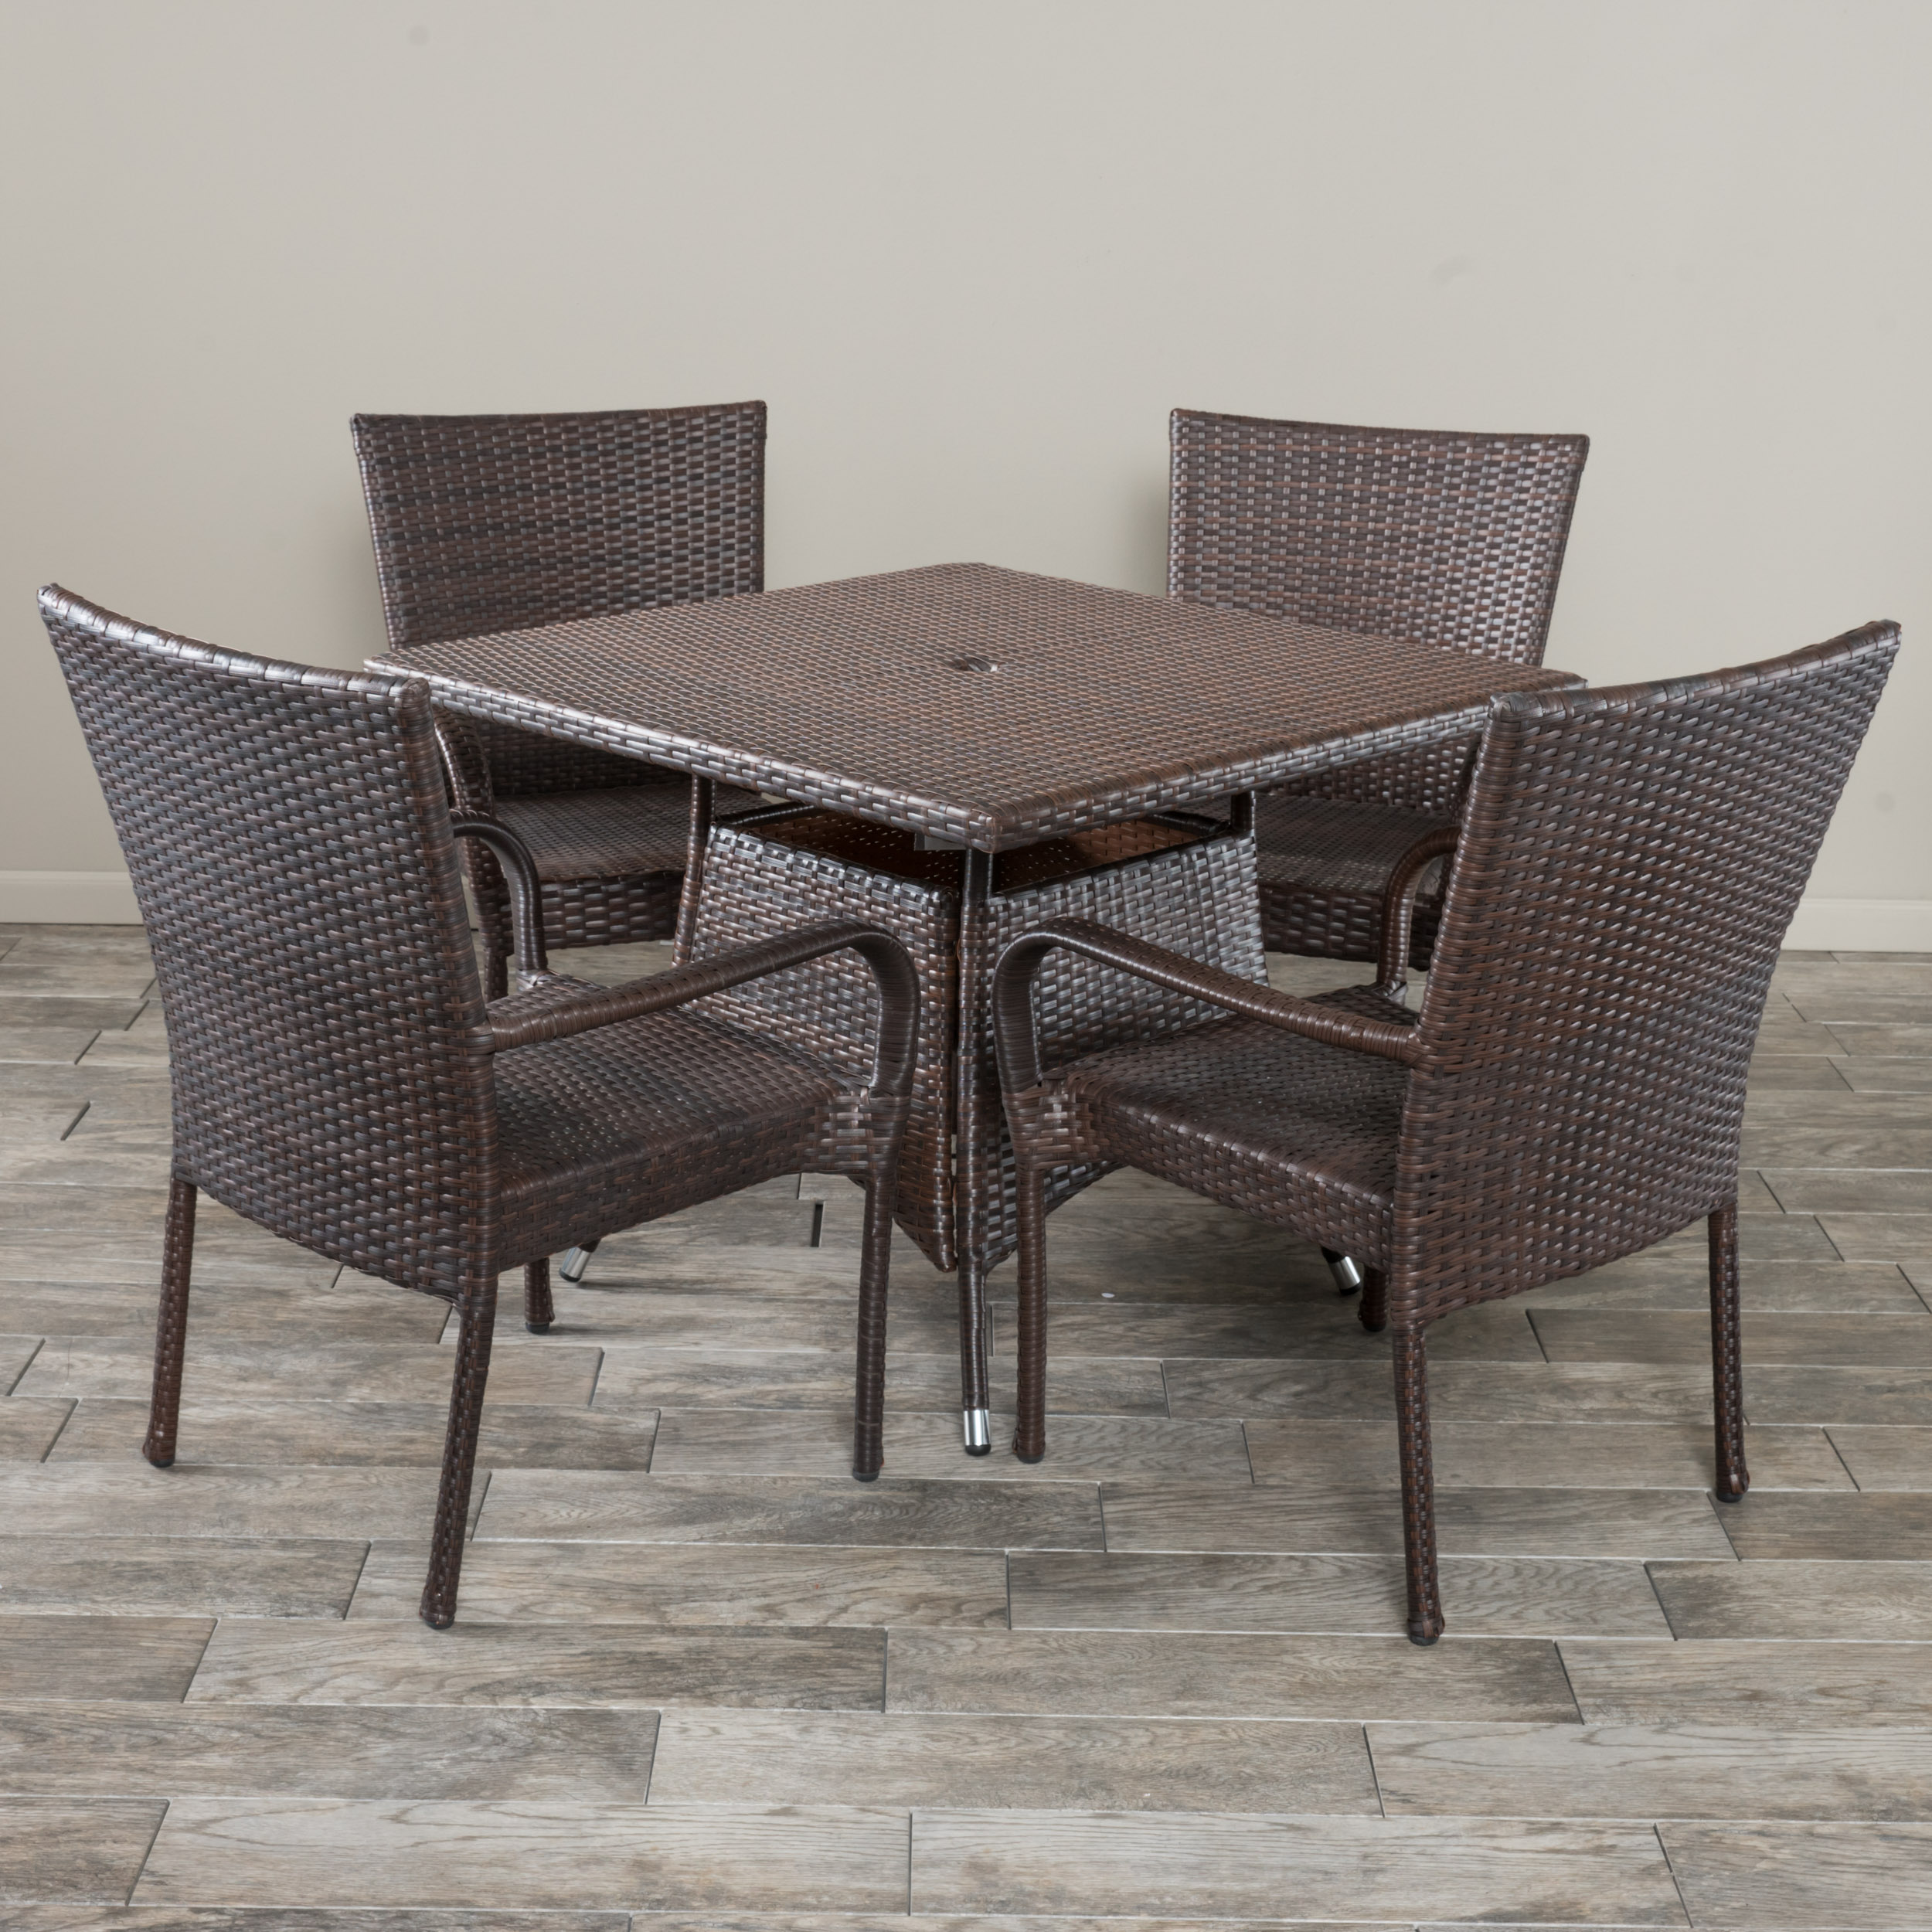 Amelia 5 Piece Outdoor Square Wicker Dining Set, Multibrown